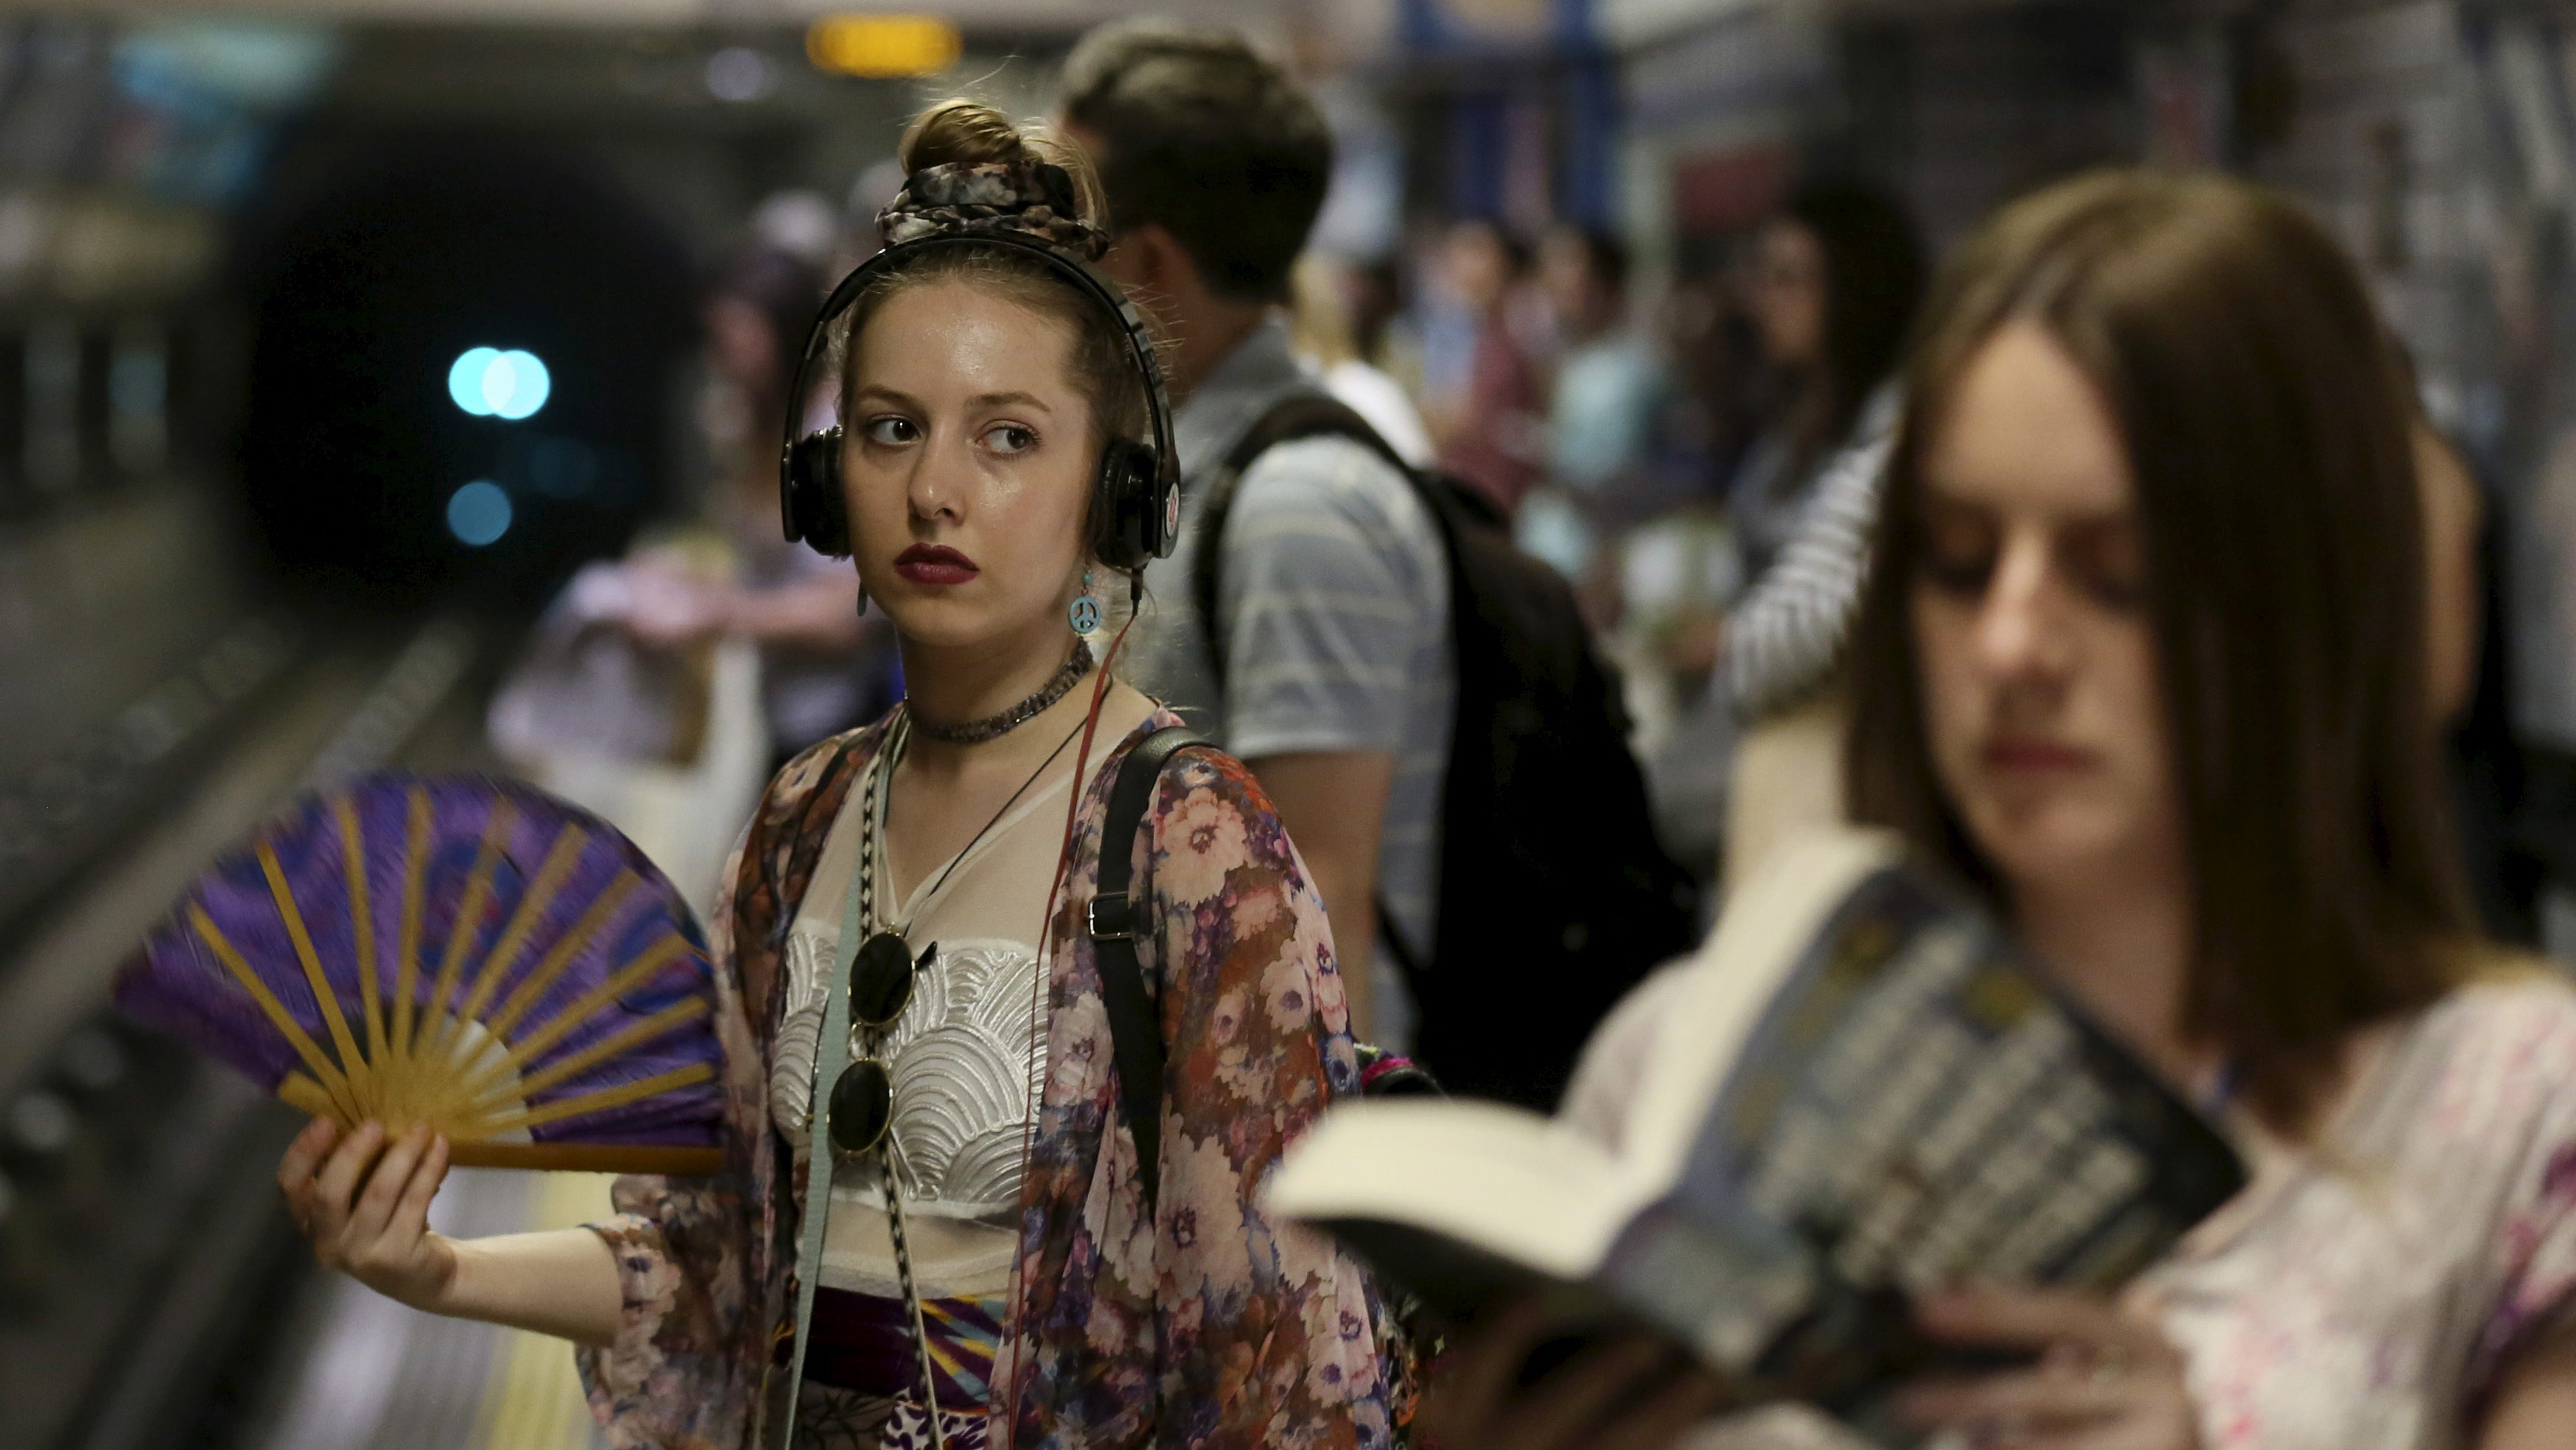 A woman fans herself while waiting for a train on the London underground on a hot day in London, July 1, 2015. Temperatures in London hit 34.5 degree Celsius (94 degree Fahrenheit) by lunchtime, making it the hottest day in July in nine years in Britain. REUTERS/Paul Hackett